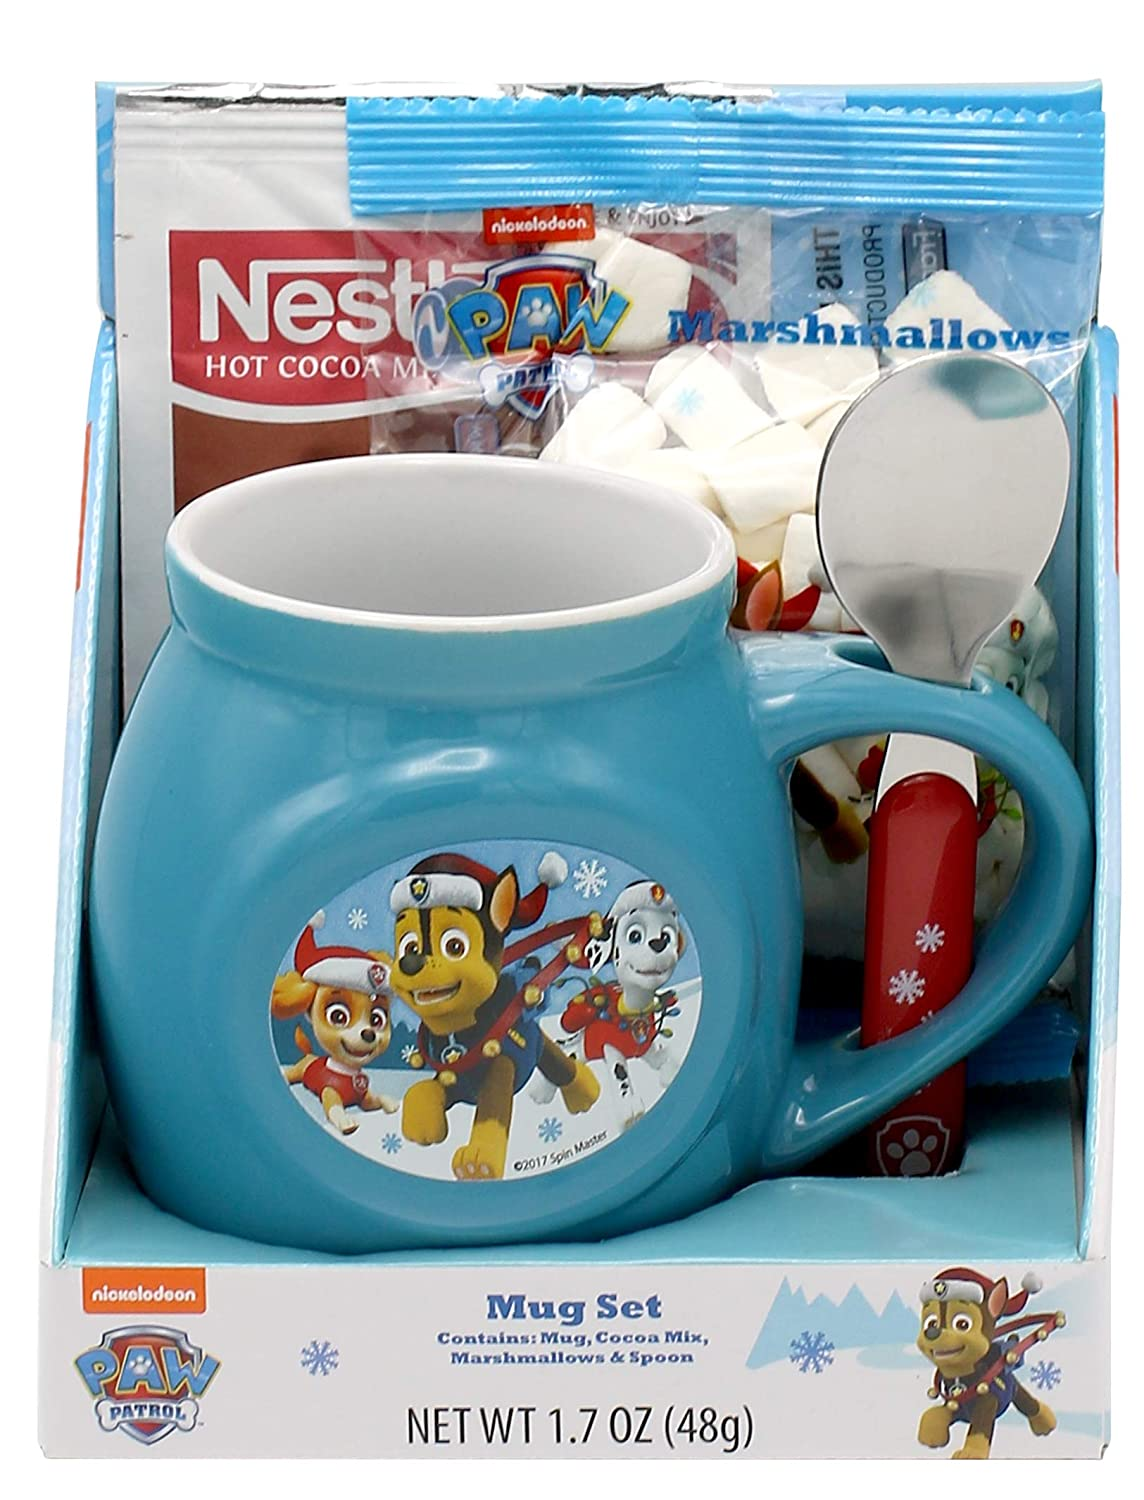 Frankford paw patrol Christmas Mug and Spoon Gift Set with Cocoa Mix and Marshmallows, 1.70 oz